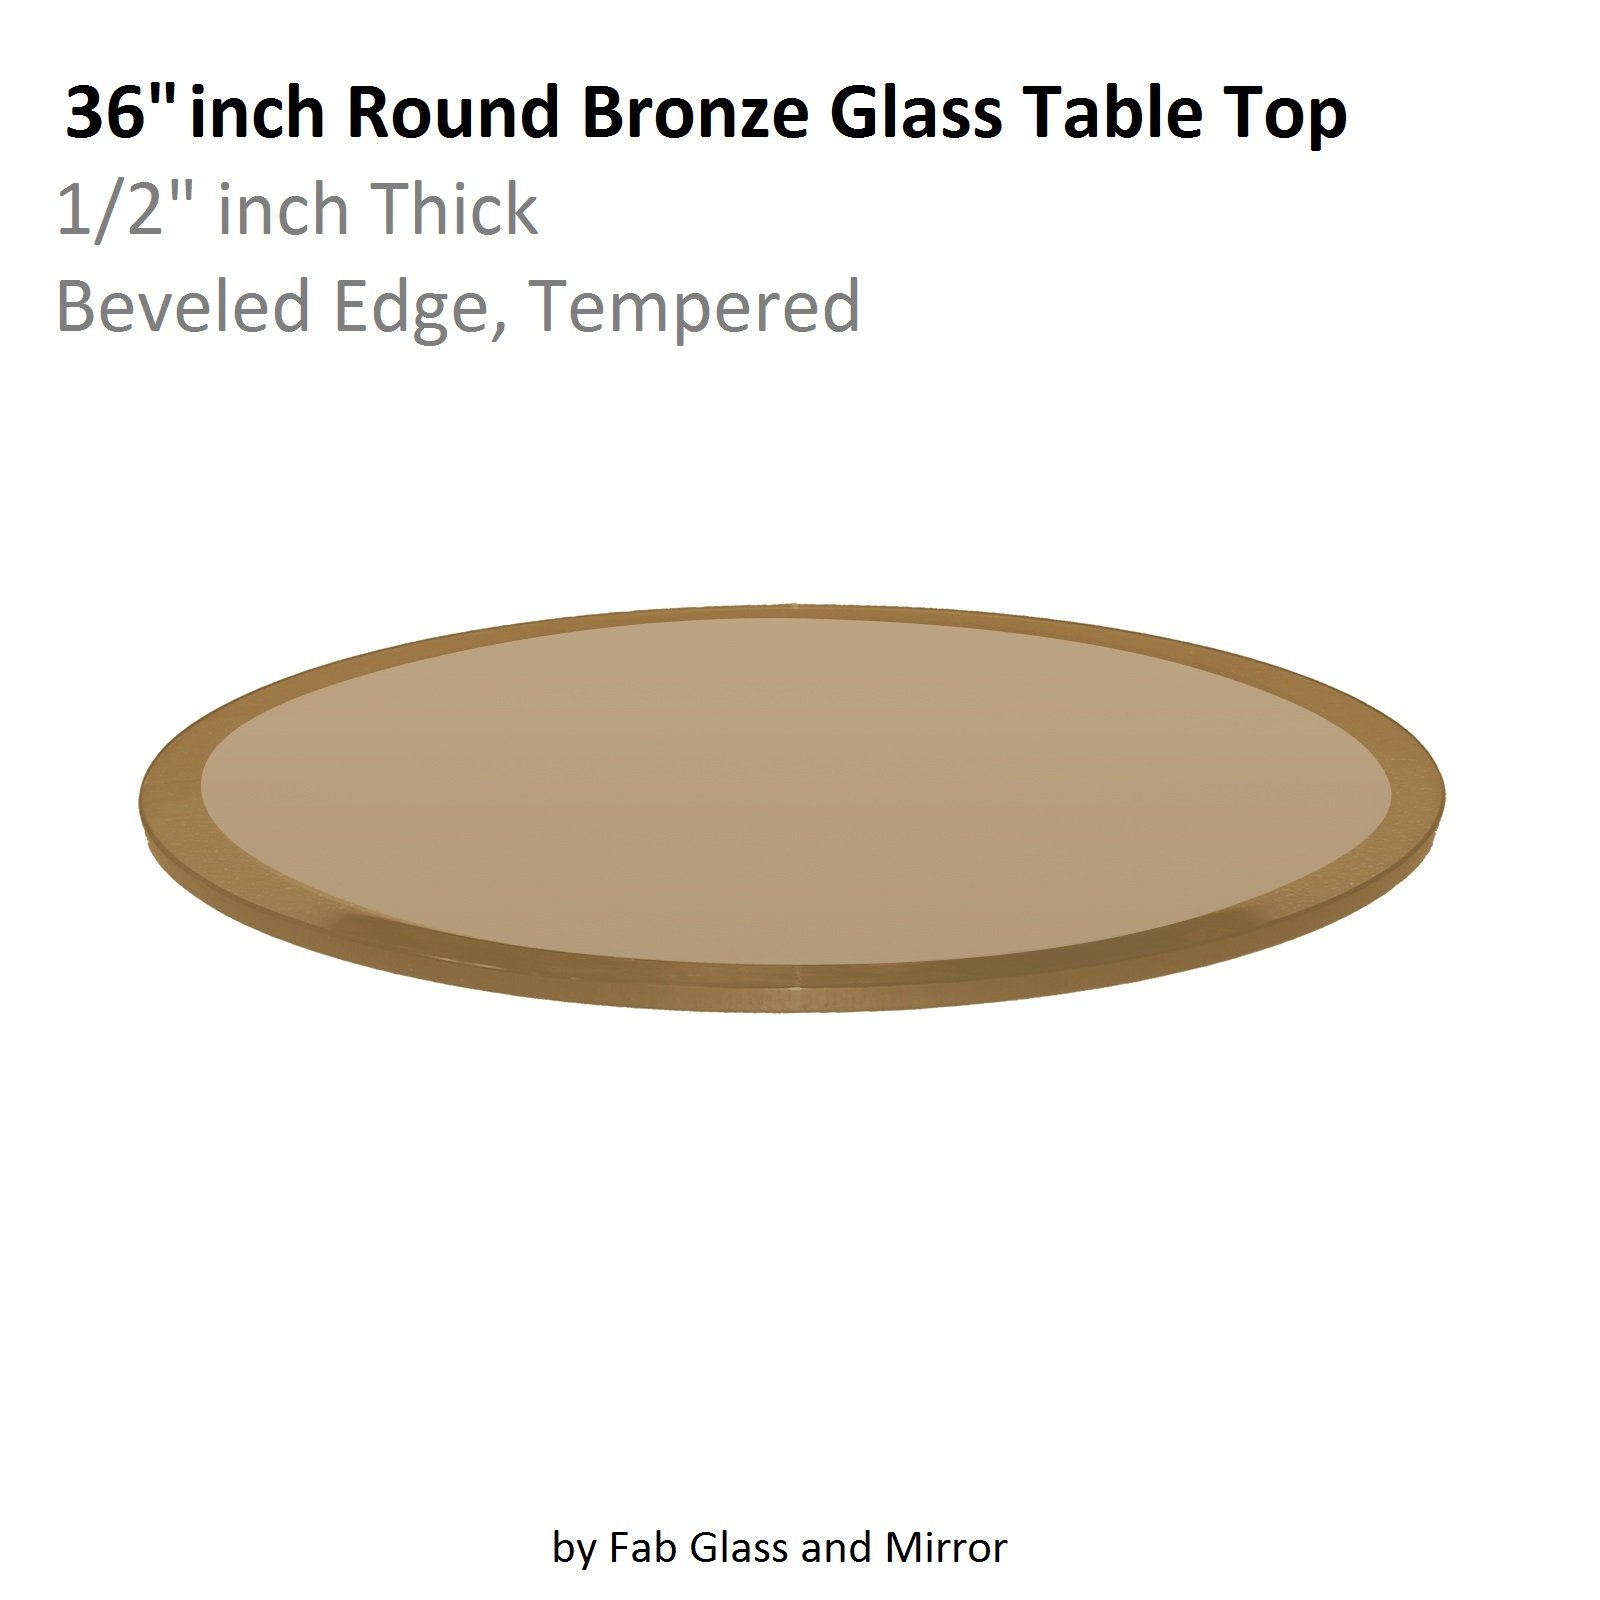 Fab Glass and Mirror Glass Table Top: 36'' Round 1/2'' Thick Beveled Tempered, Bronze